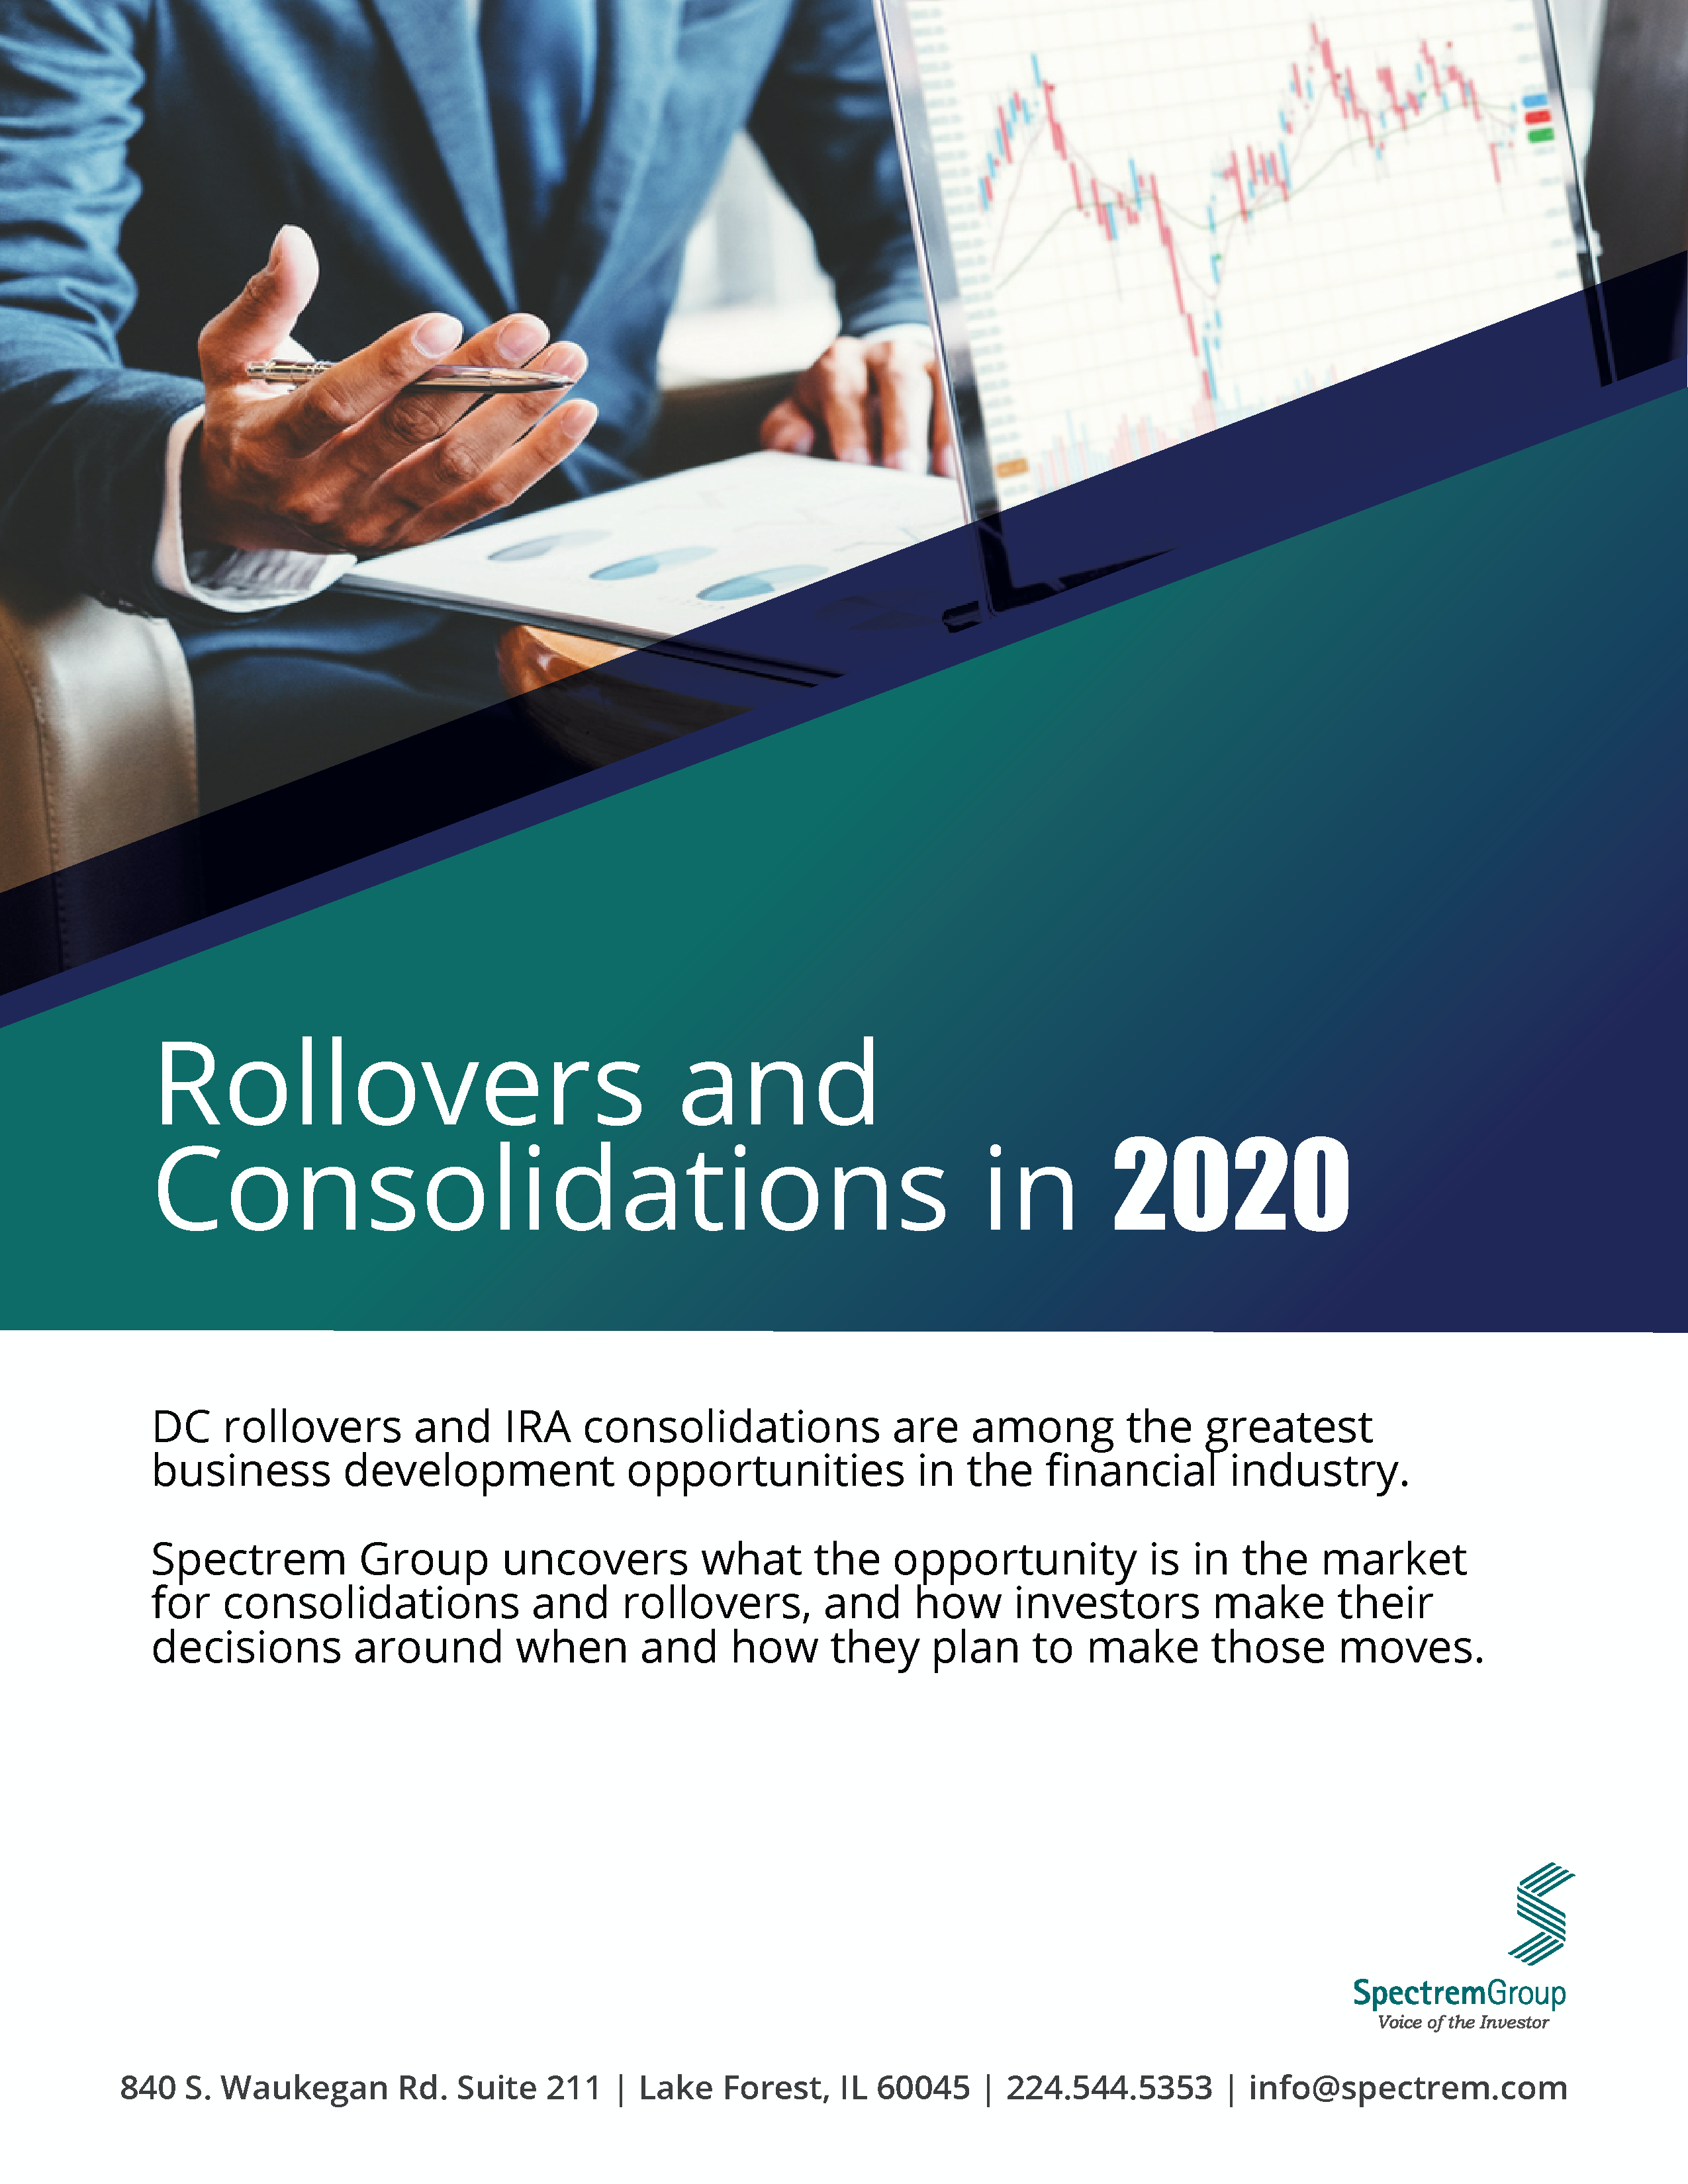 Rollovers and Consolidations in 2020